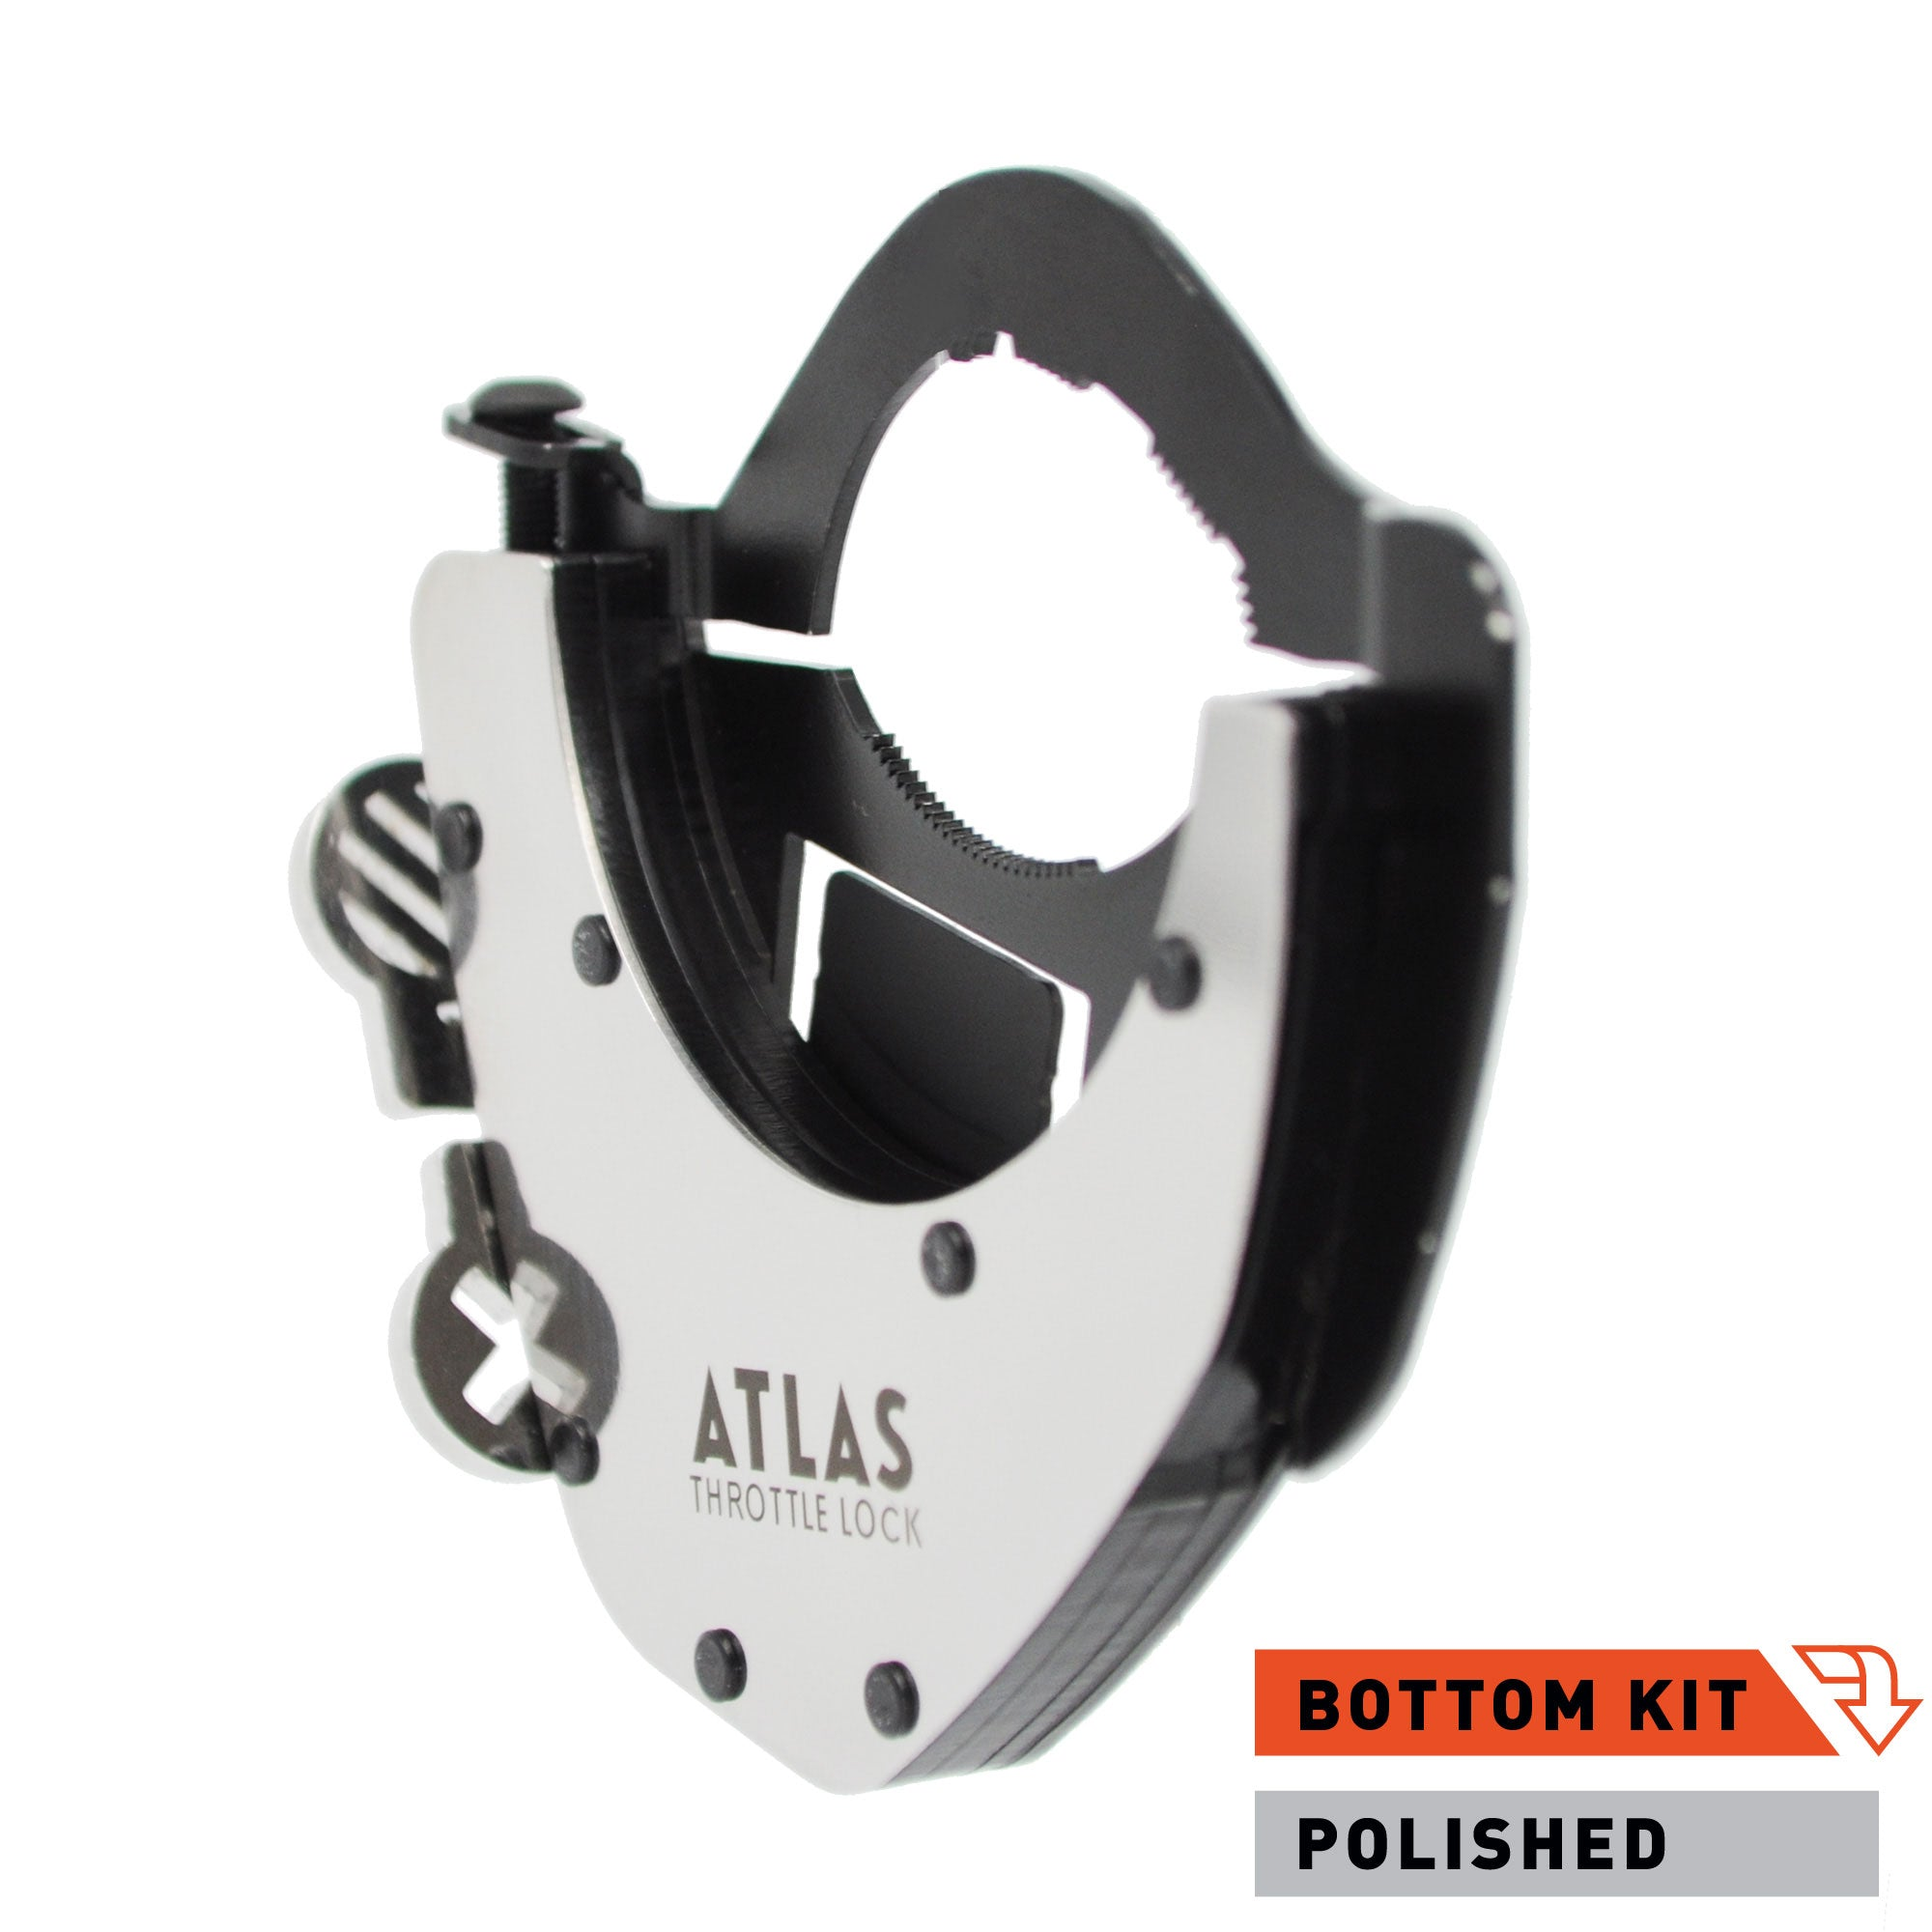 Top Kawasaki Atlas Throttle Lock Universal Fit NEXT DAY DELIVERY